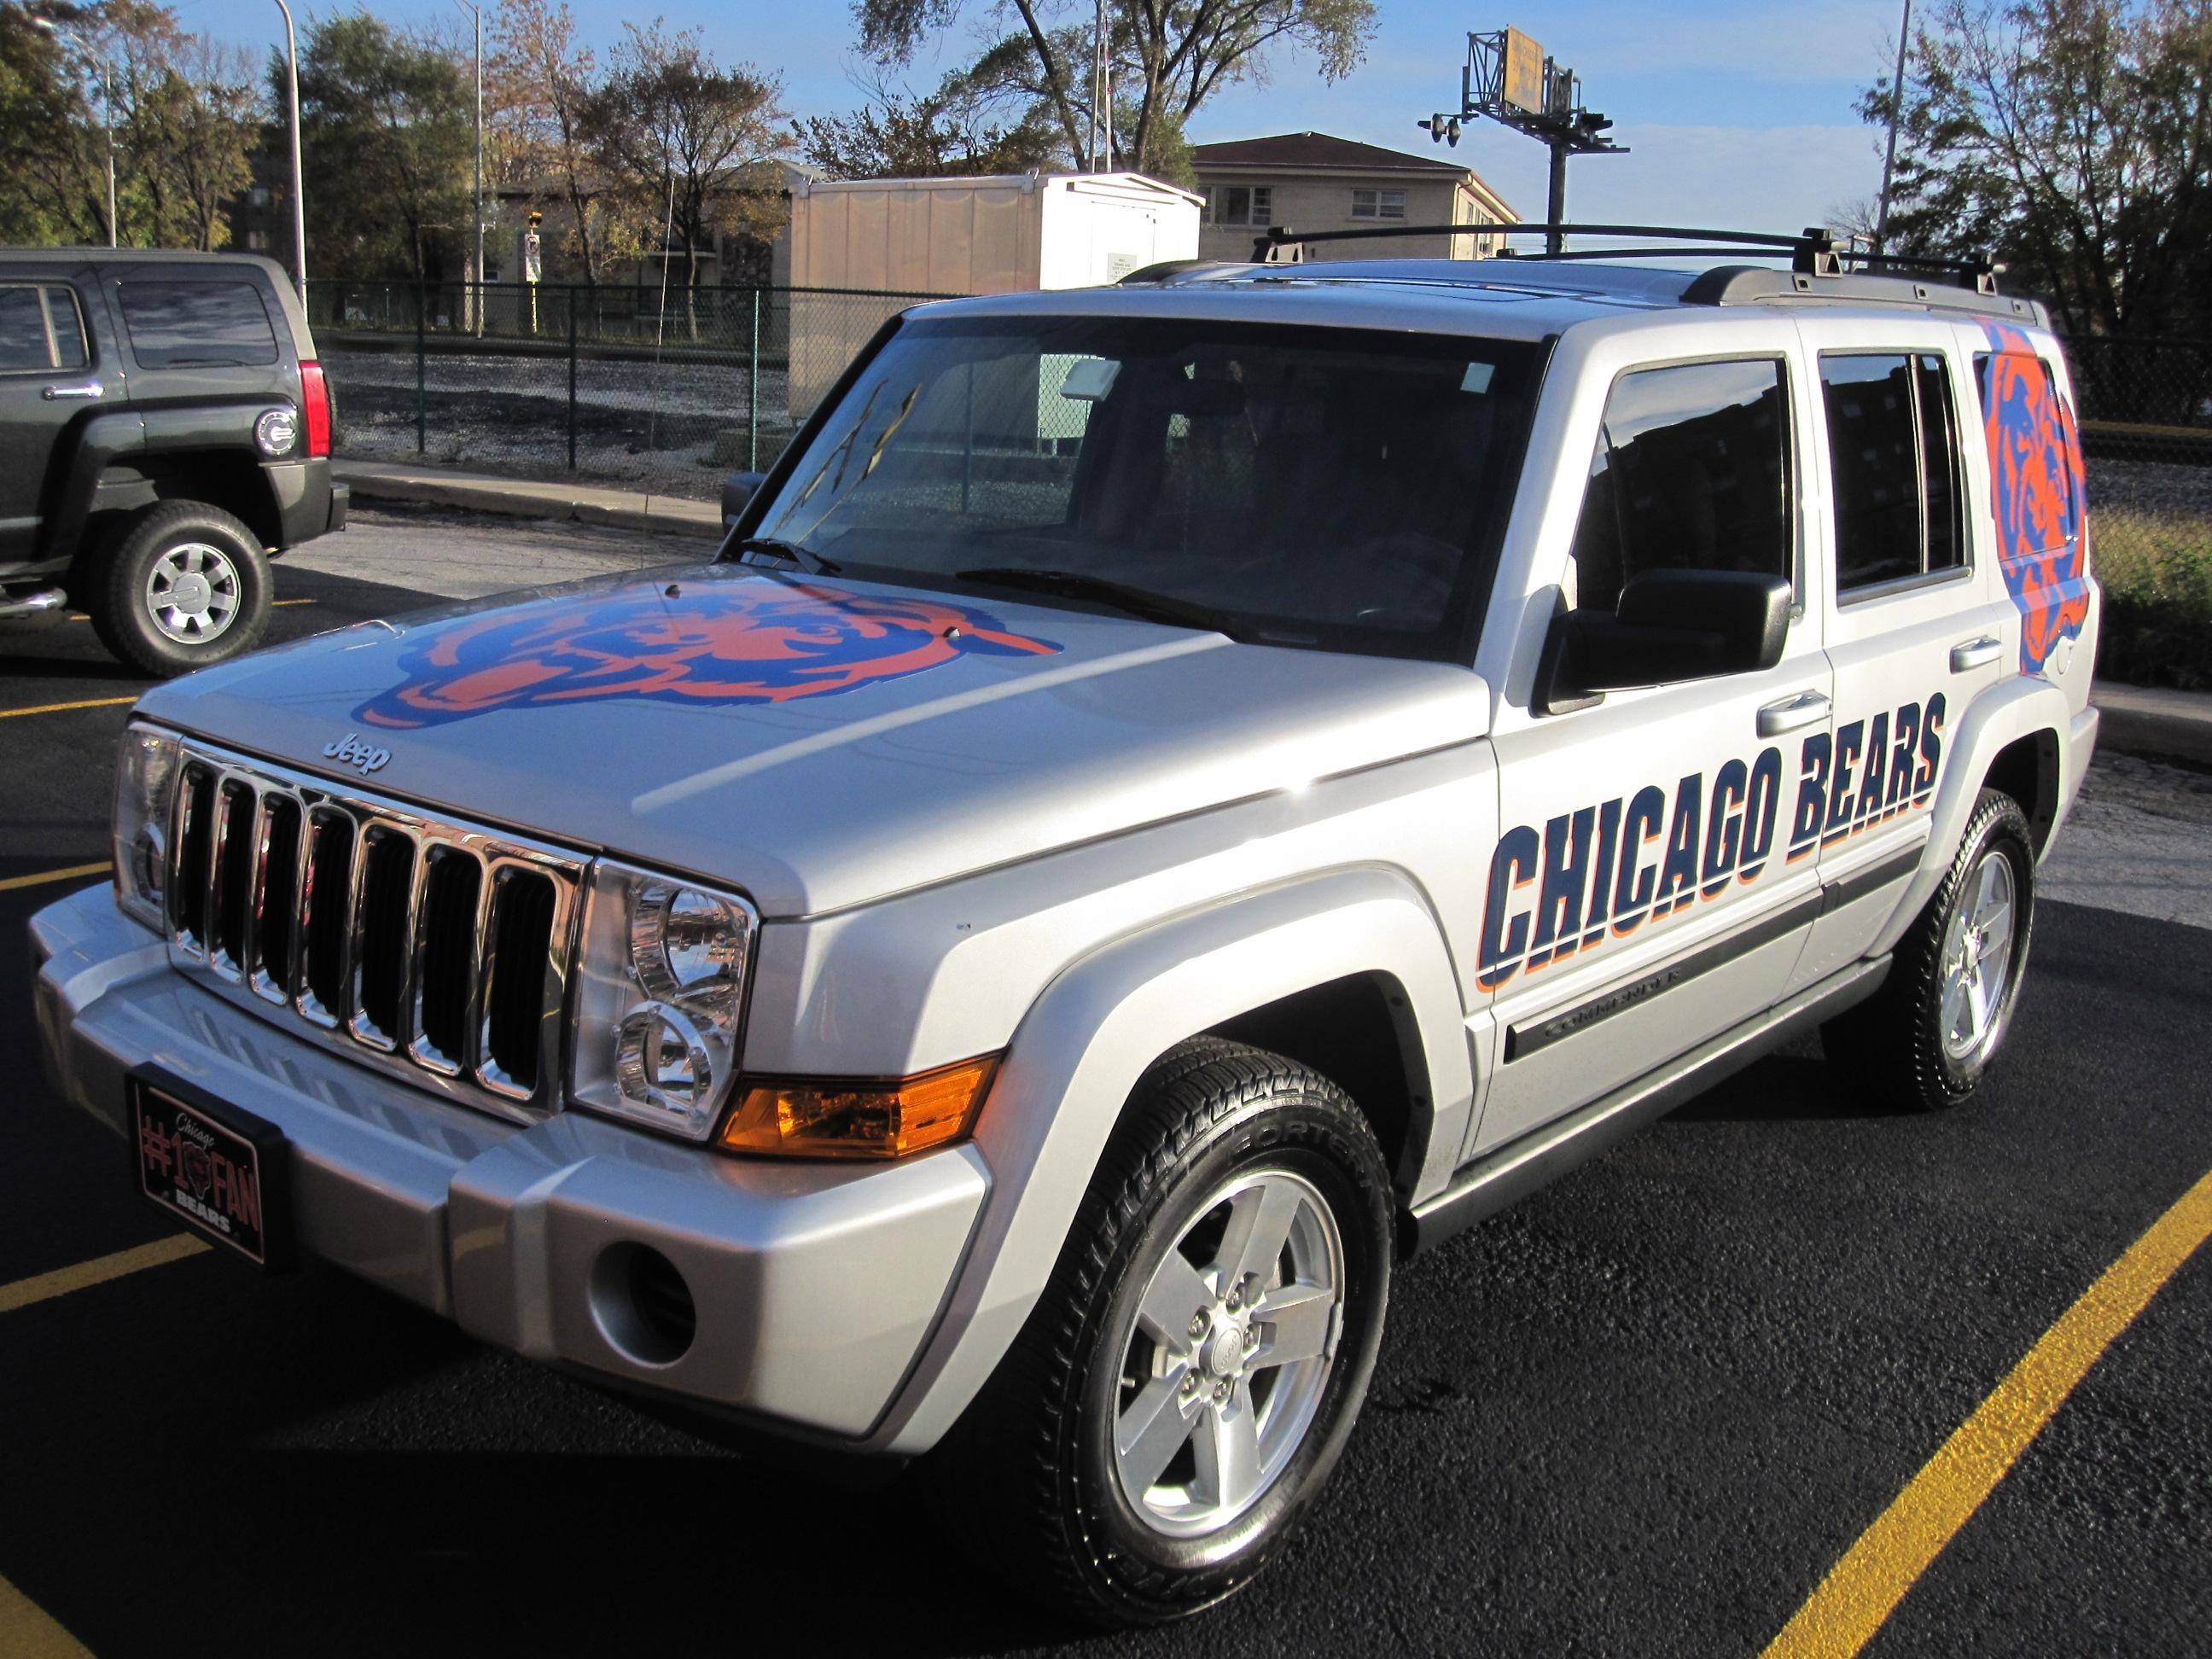 maus531 39 s 2007 jeep commander sport utility 4d in chitown il. Black Bedroom Furniture Sets. Home Design Ideas